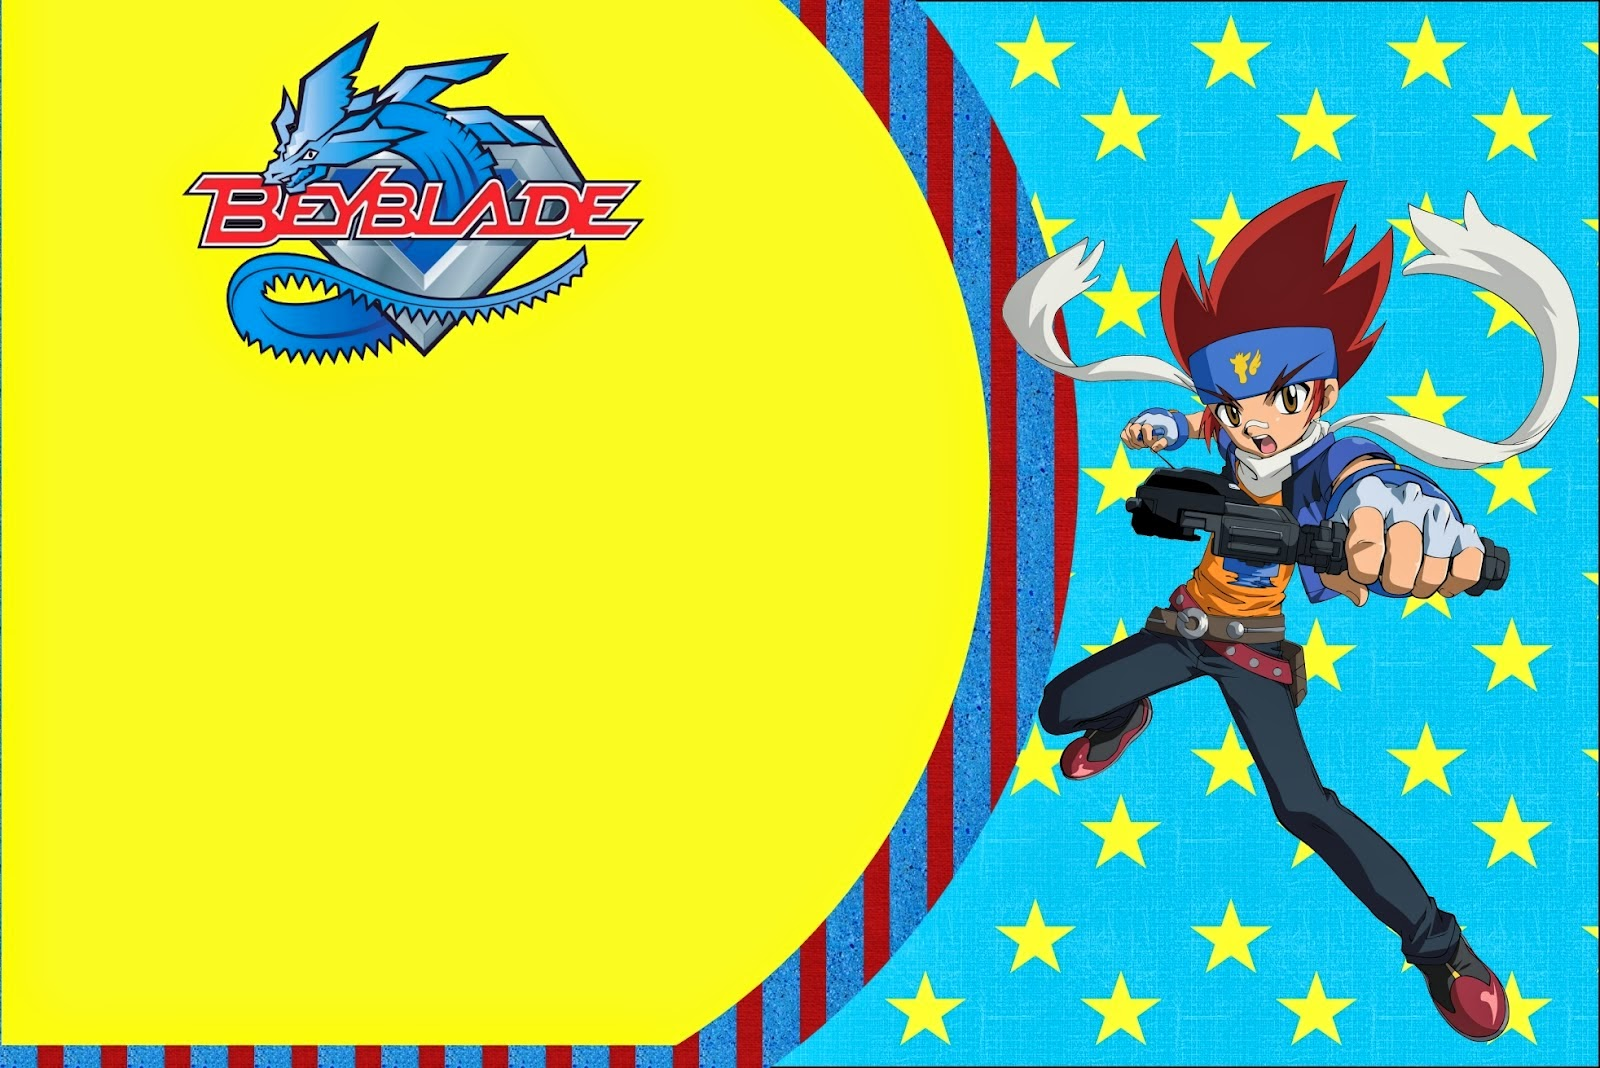 Beyblade Free Printable Invitations Oh My Fiesta For